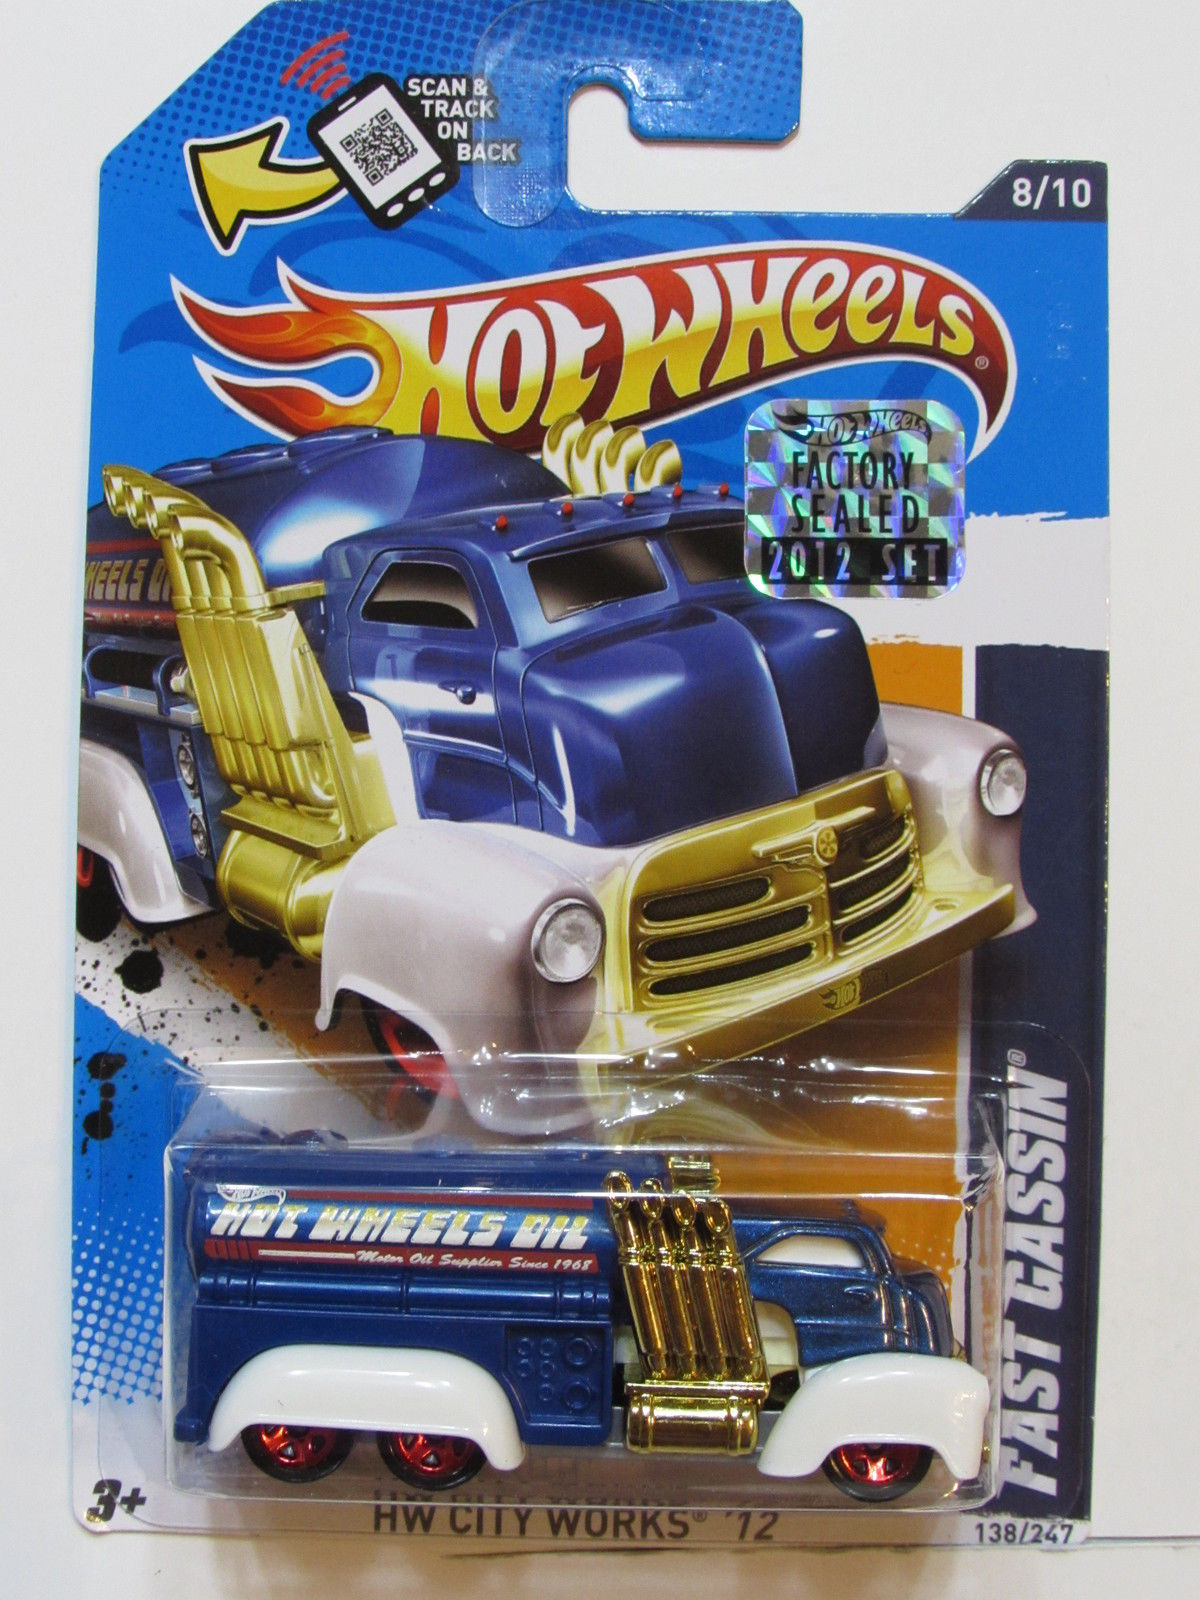 HOT WHEELS 2012 HW CITY WORKS FAST GASSIN BLUE FACTORY SEALED